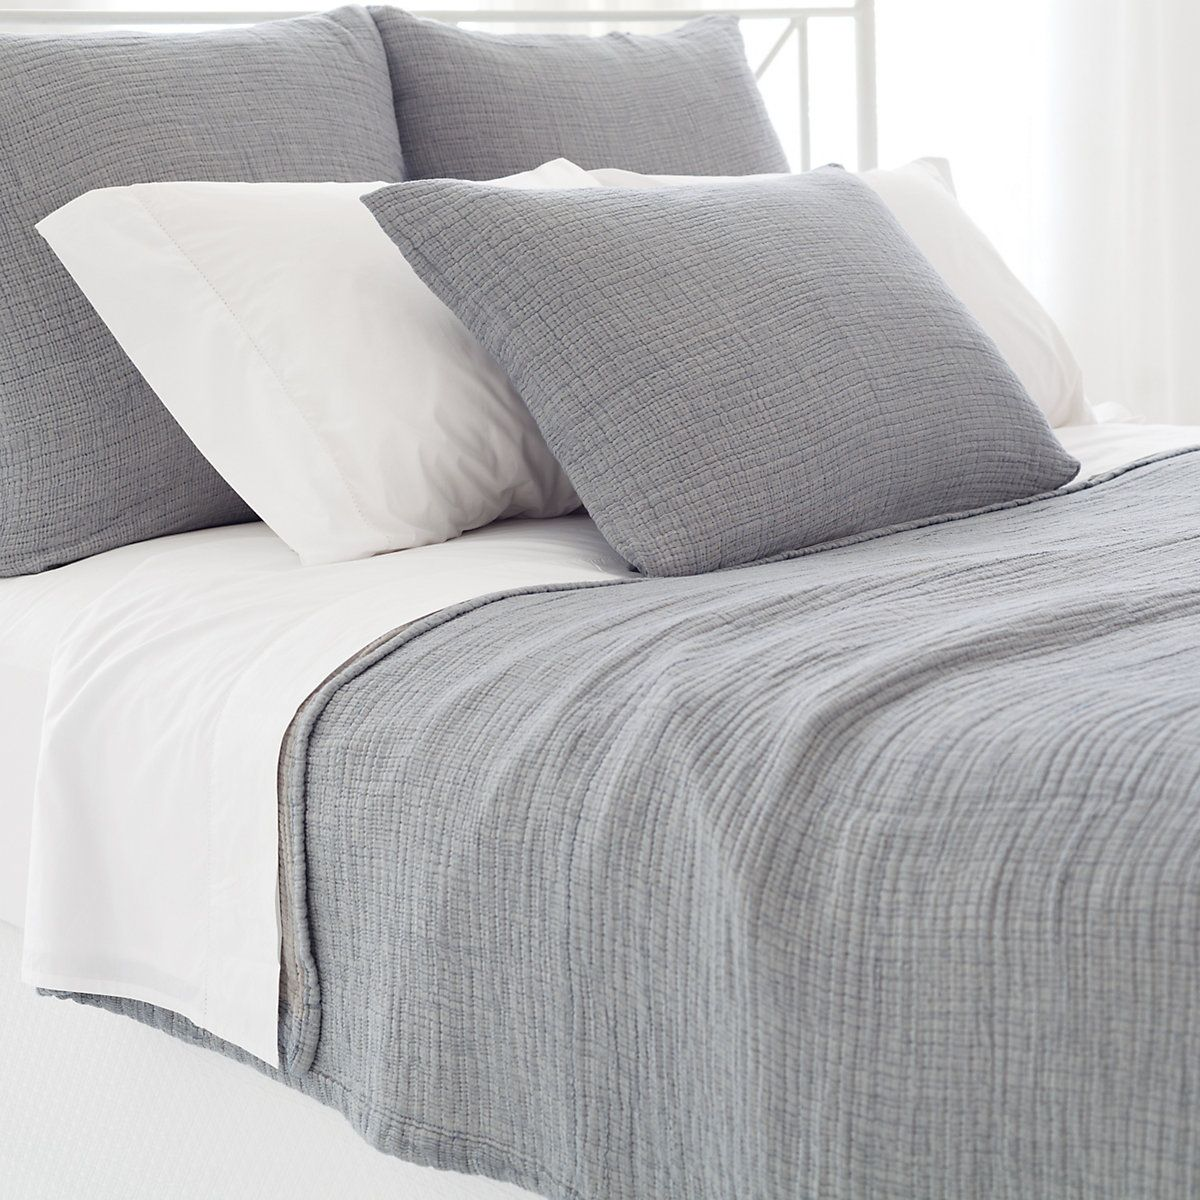 pineconehill Brooklyn Matelasse Coverlet